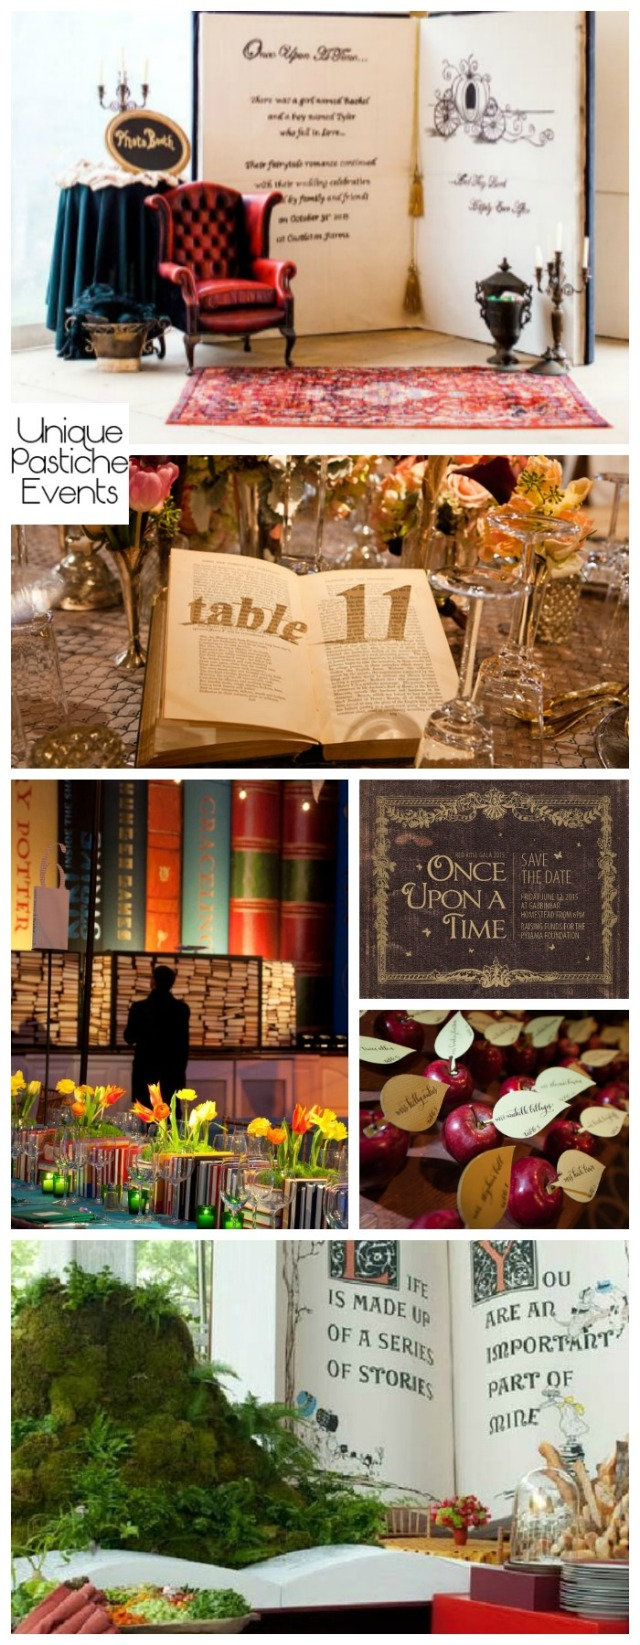 Once Upon a Time Storybook Gala Ideas